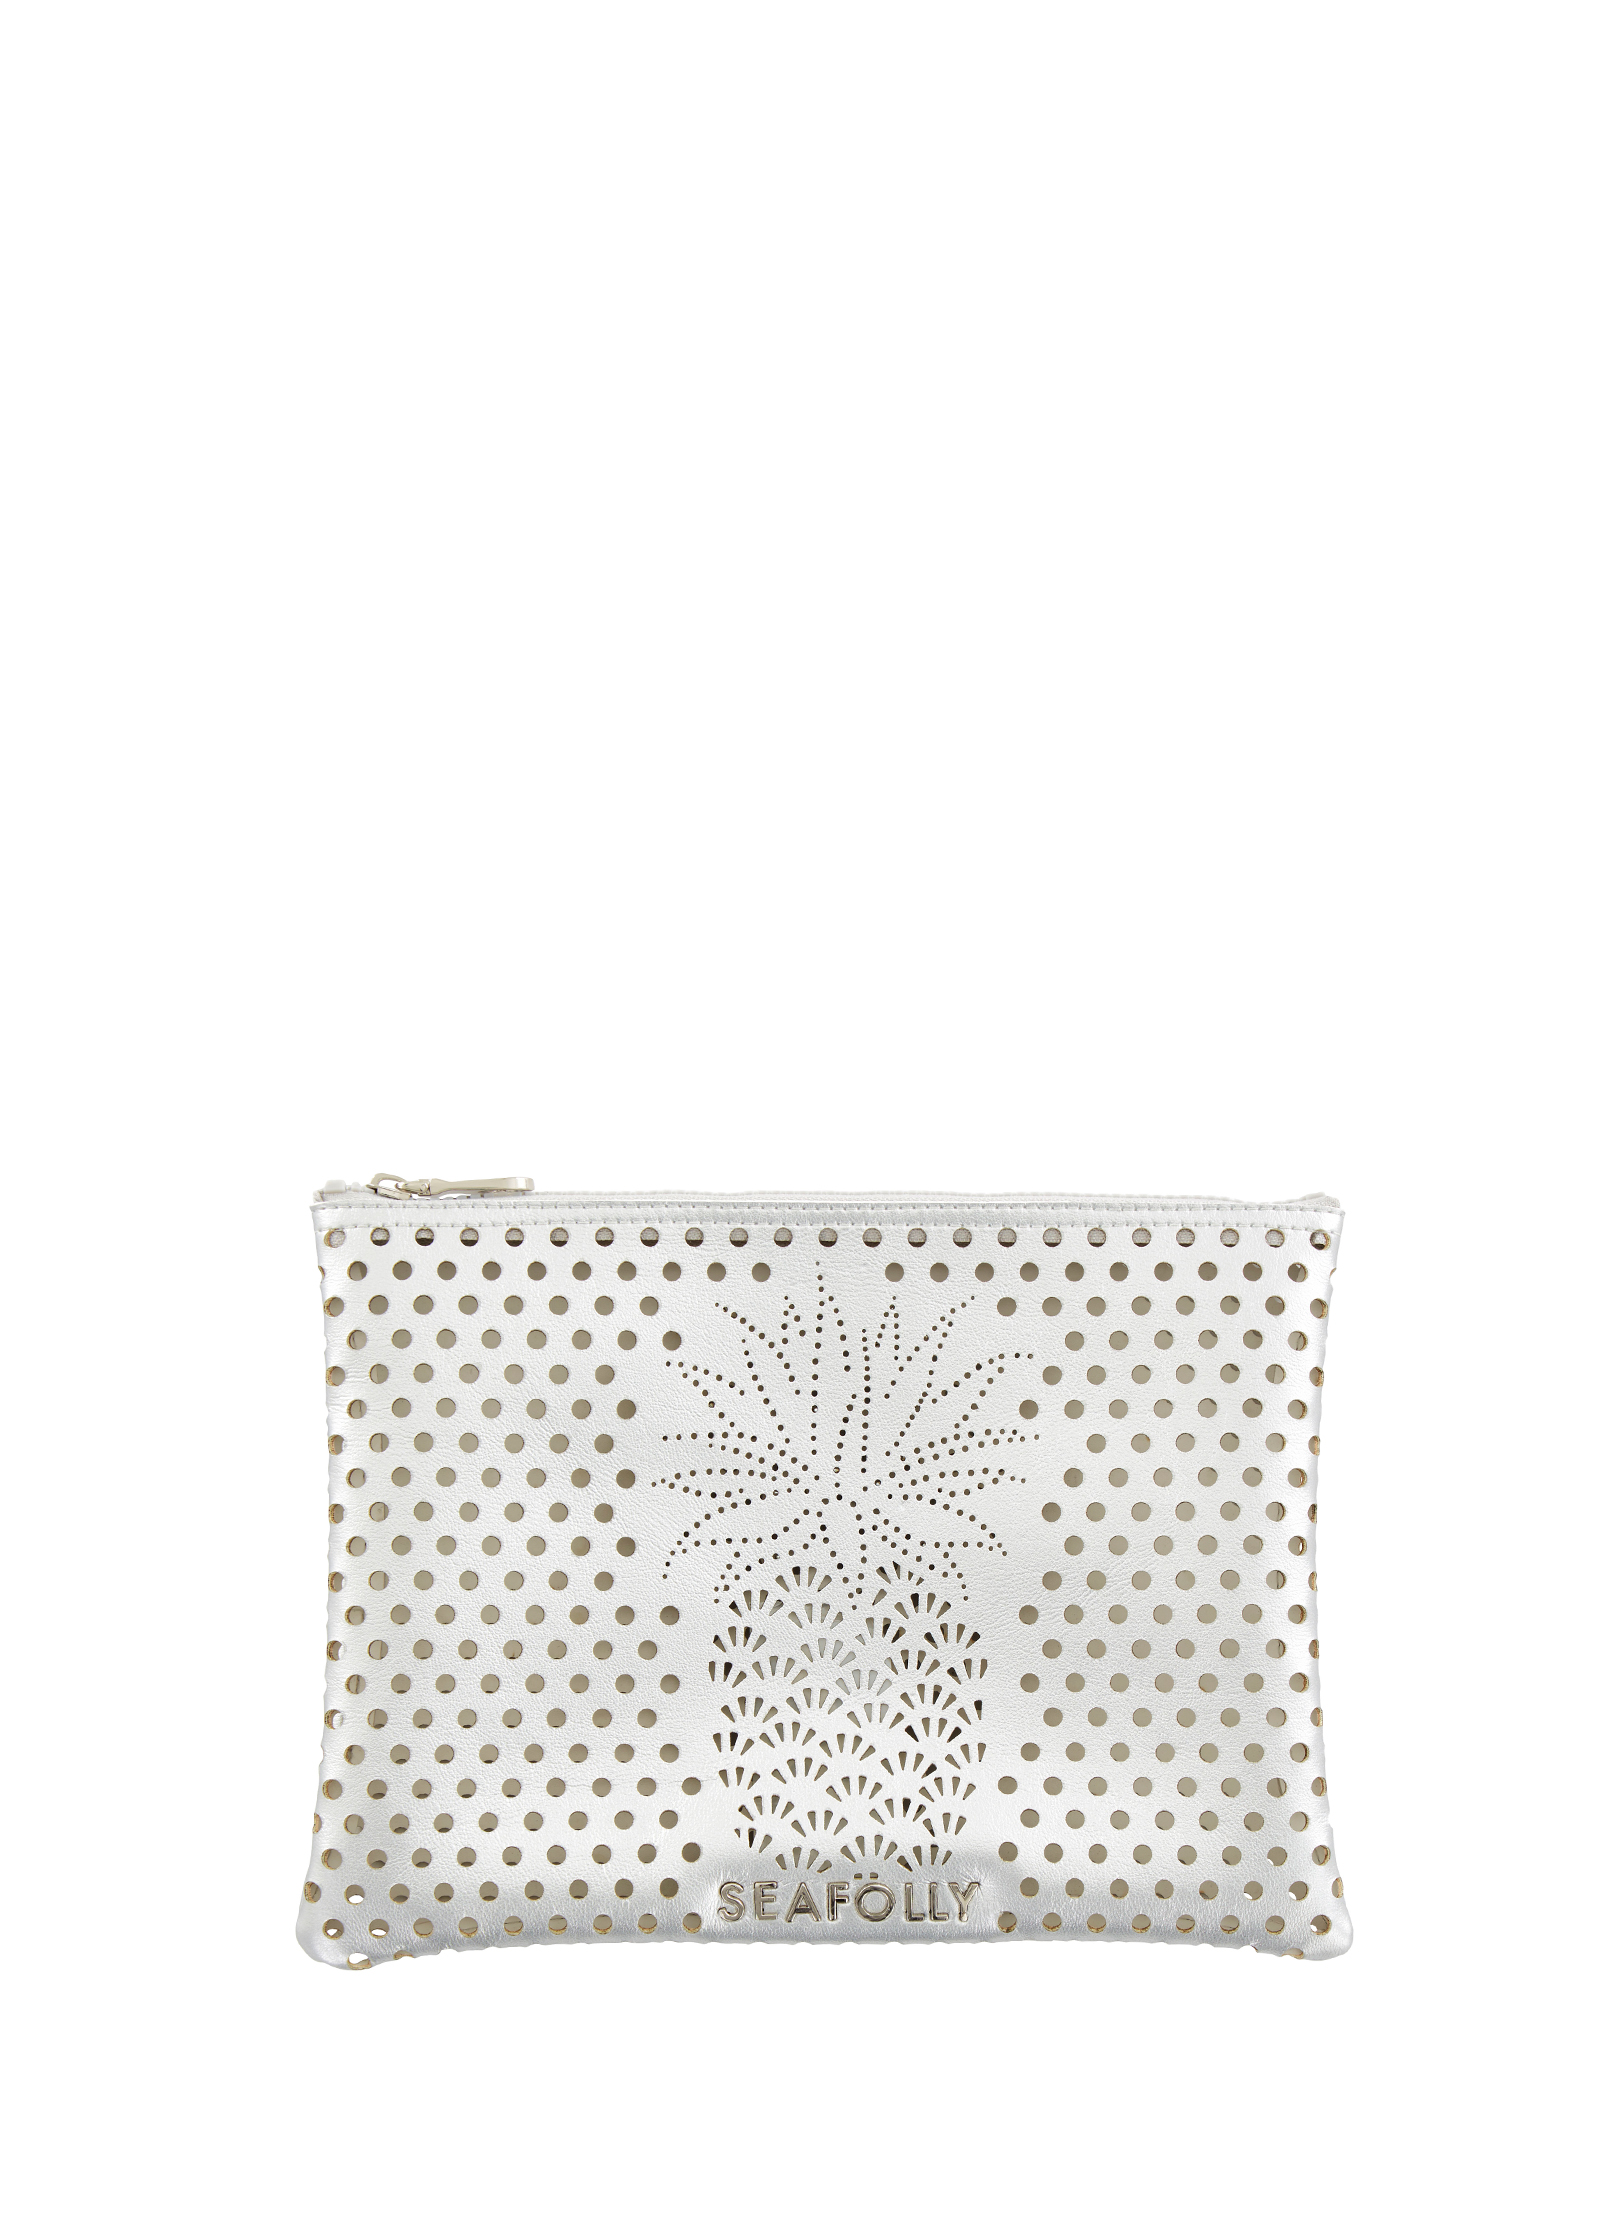 Seafolly Carried Away Pineapple Clutch - Silver